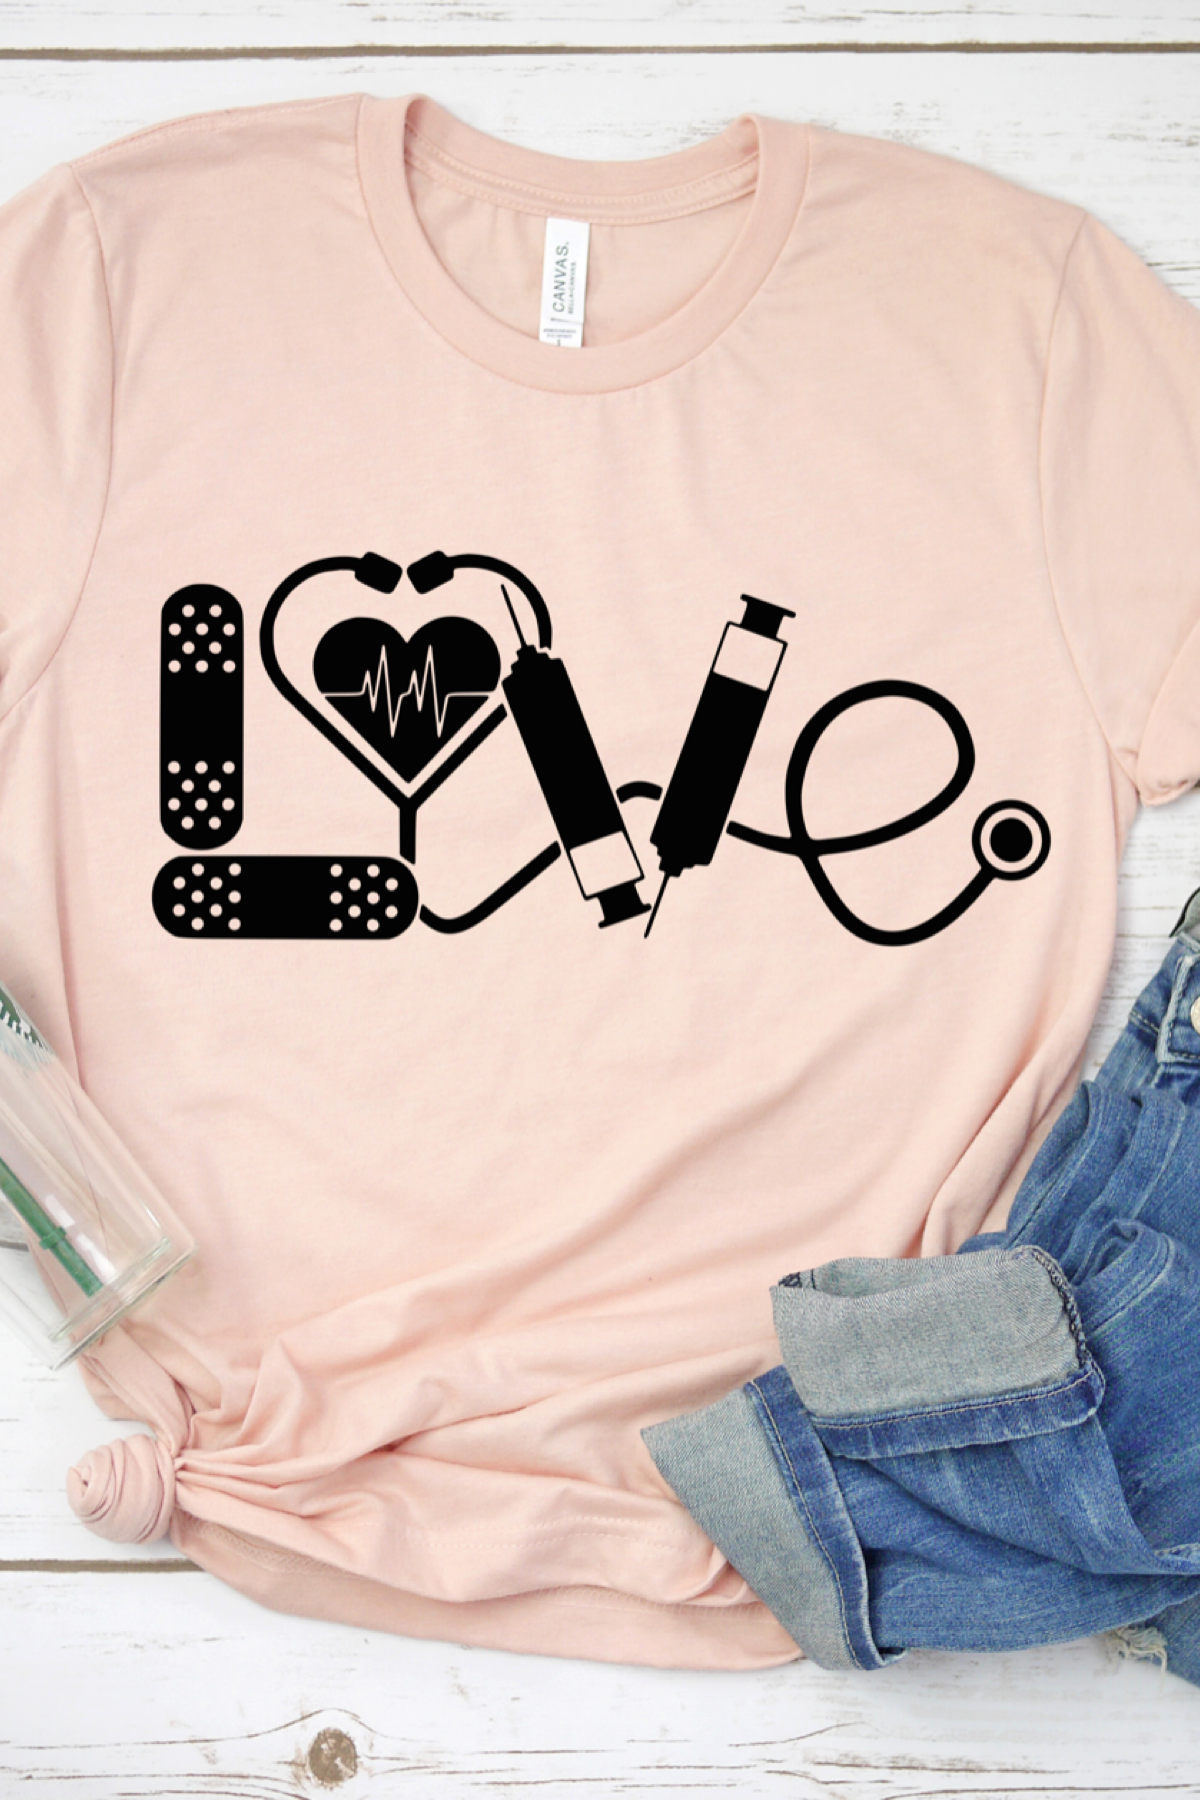 Love Shirt, Nurse Shirt, Nursing Student, Nurse Appreciation, Doctor Shirt #medicalstudents Cute T shirt for a Nurse, Nursing Student, Doctor, and medical student. #nursingstudents Love Shirt, Nurse Shirt, Nursing Student, Nurse Appreciation, Doctor Shirt #medicalstudents Cute T shirt for a Nurse, Nursing Student, Doctor, and medical student. #nursingstudents